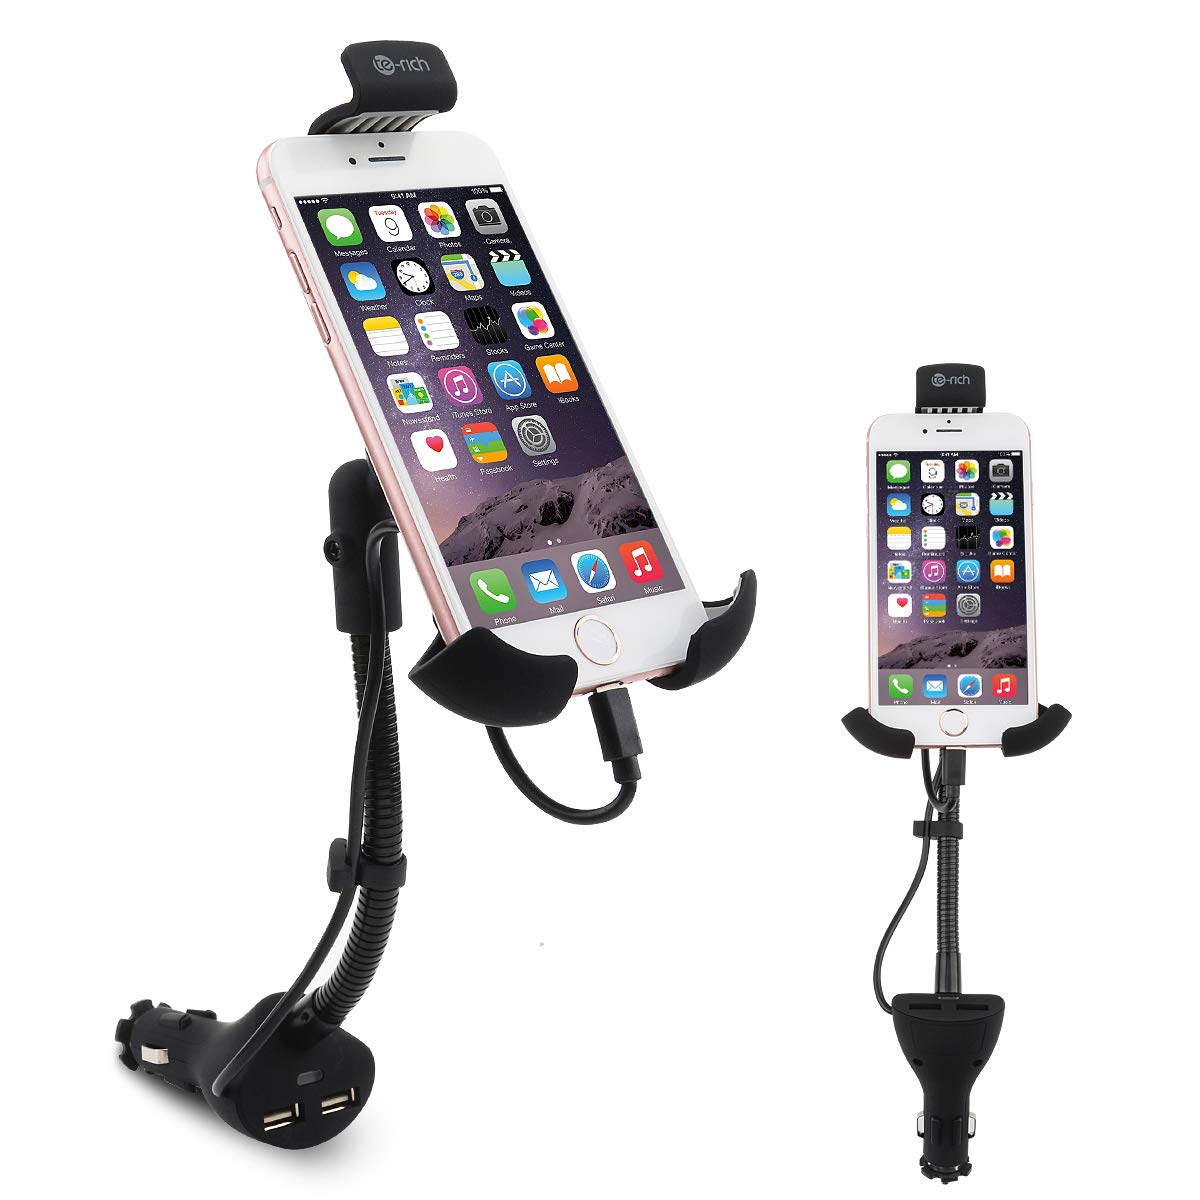 Te-Rich 2-in-1 Cigarette Lighter Smartphone Car Mount Charger Best Car Phone Holder